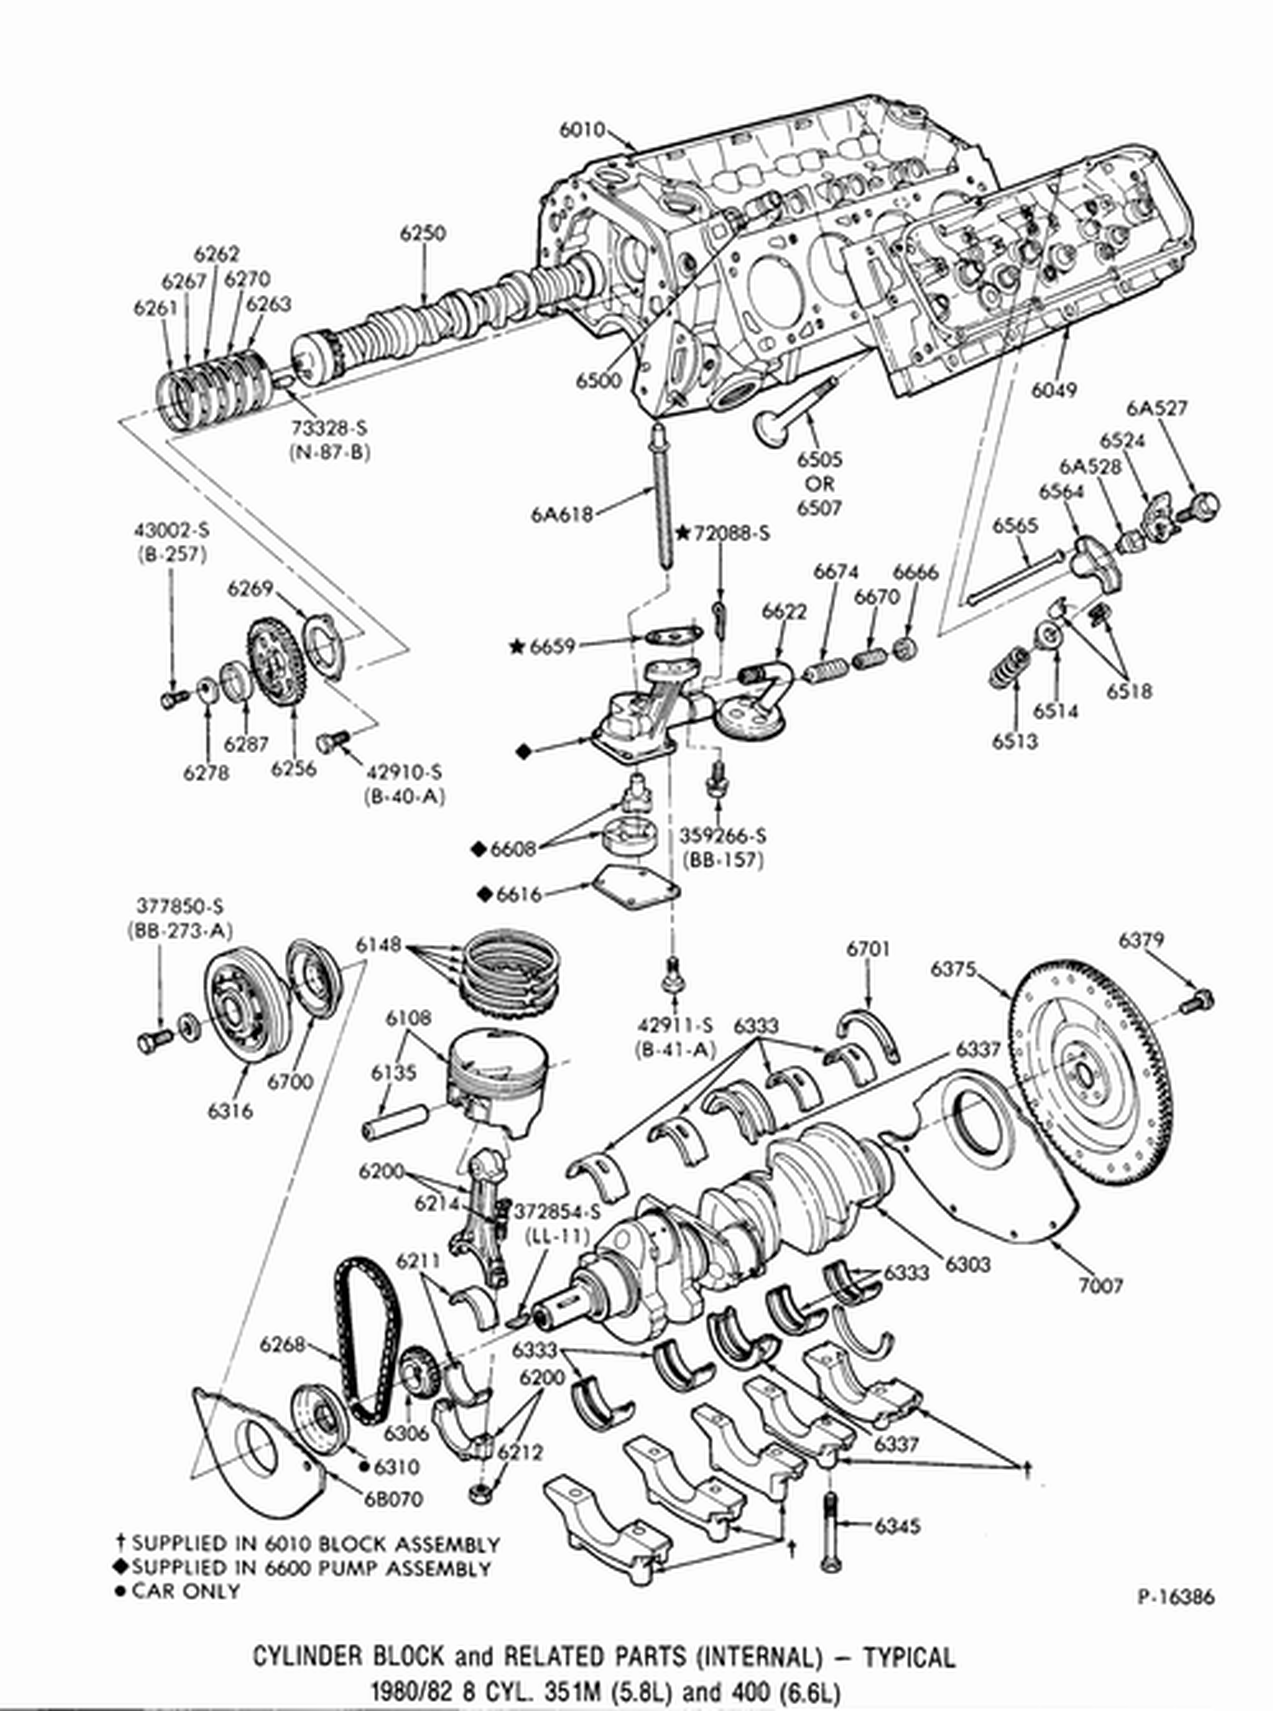 1977 351 cleveland engine diagram